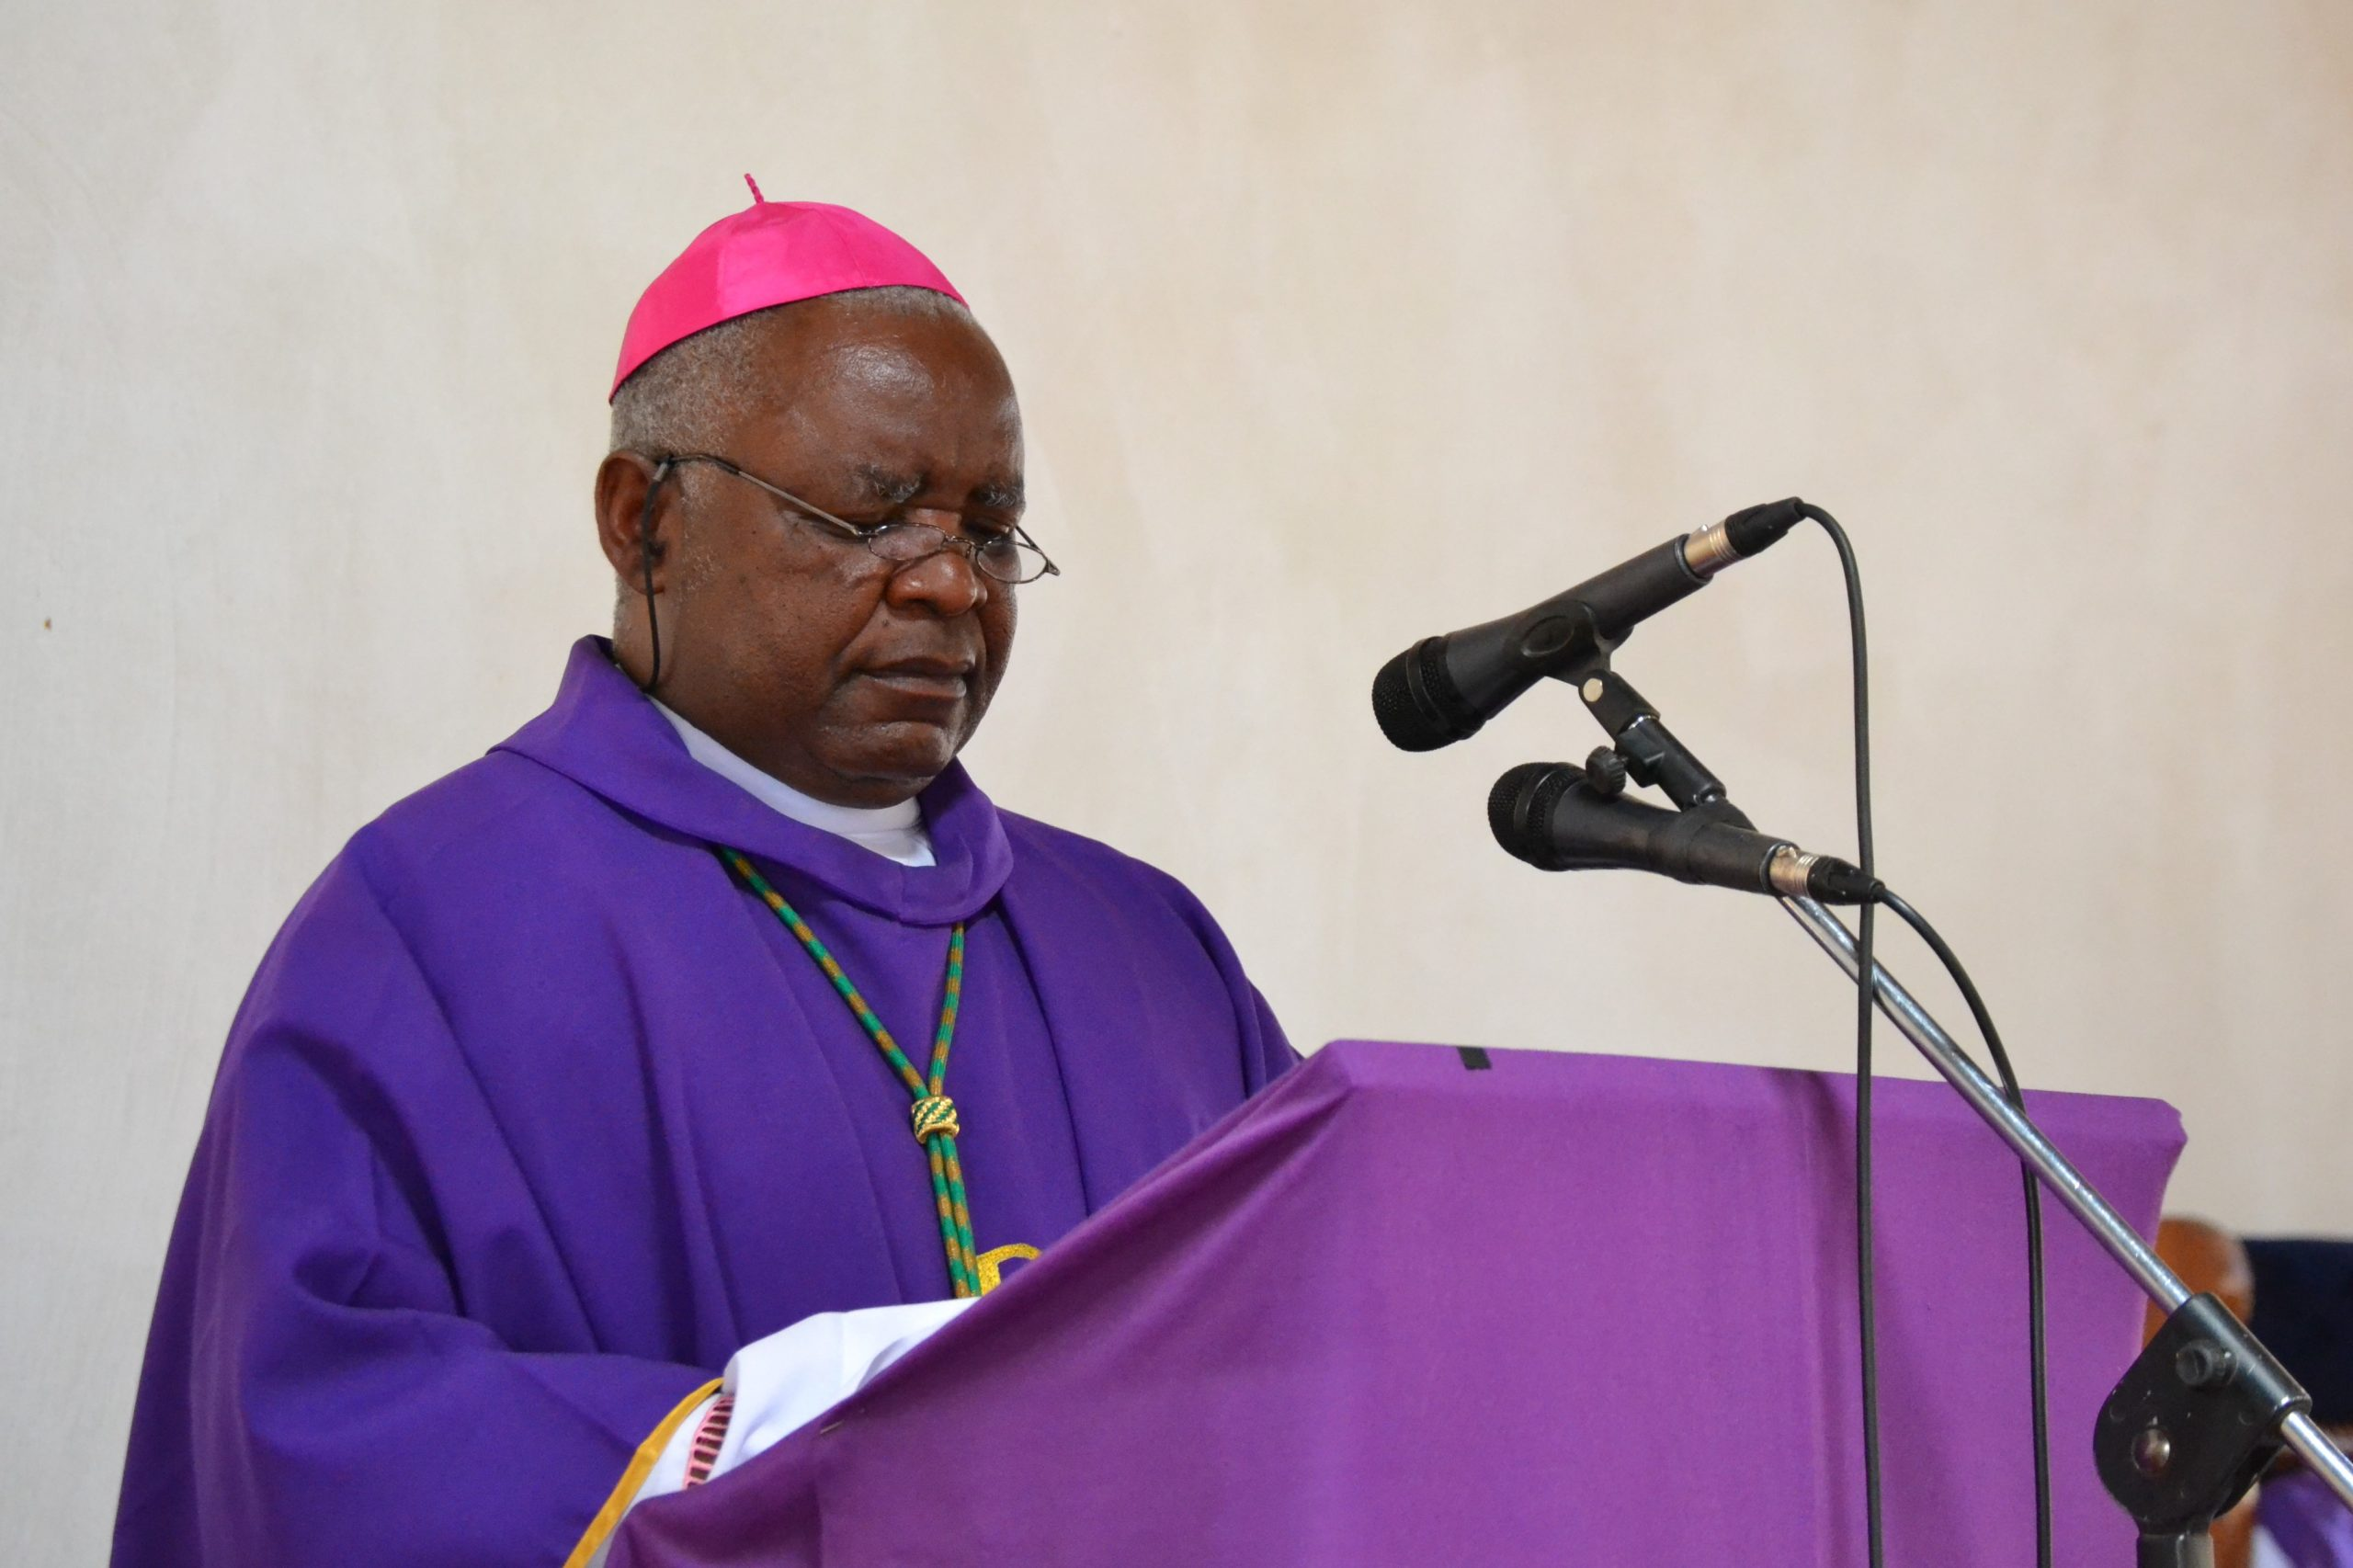 Bishop Mtumbuka Urges Christians to Assess Their Encounter with Christ